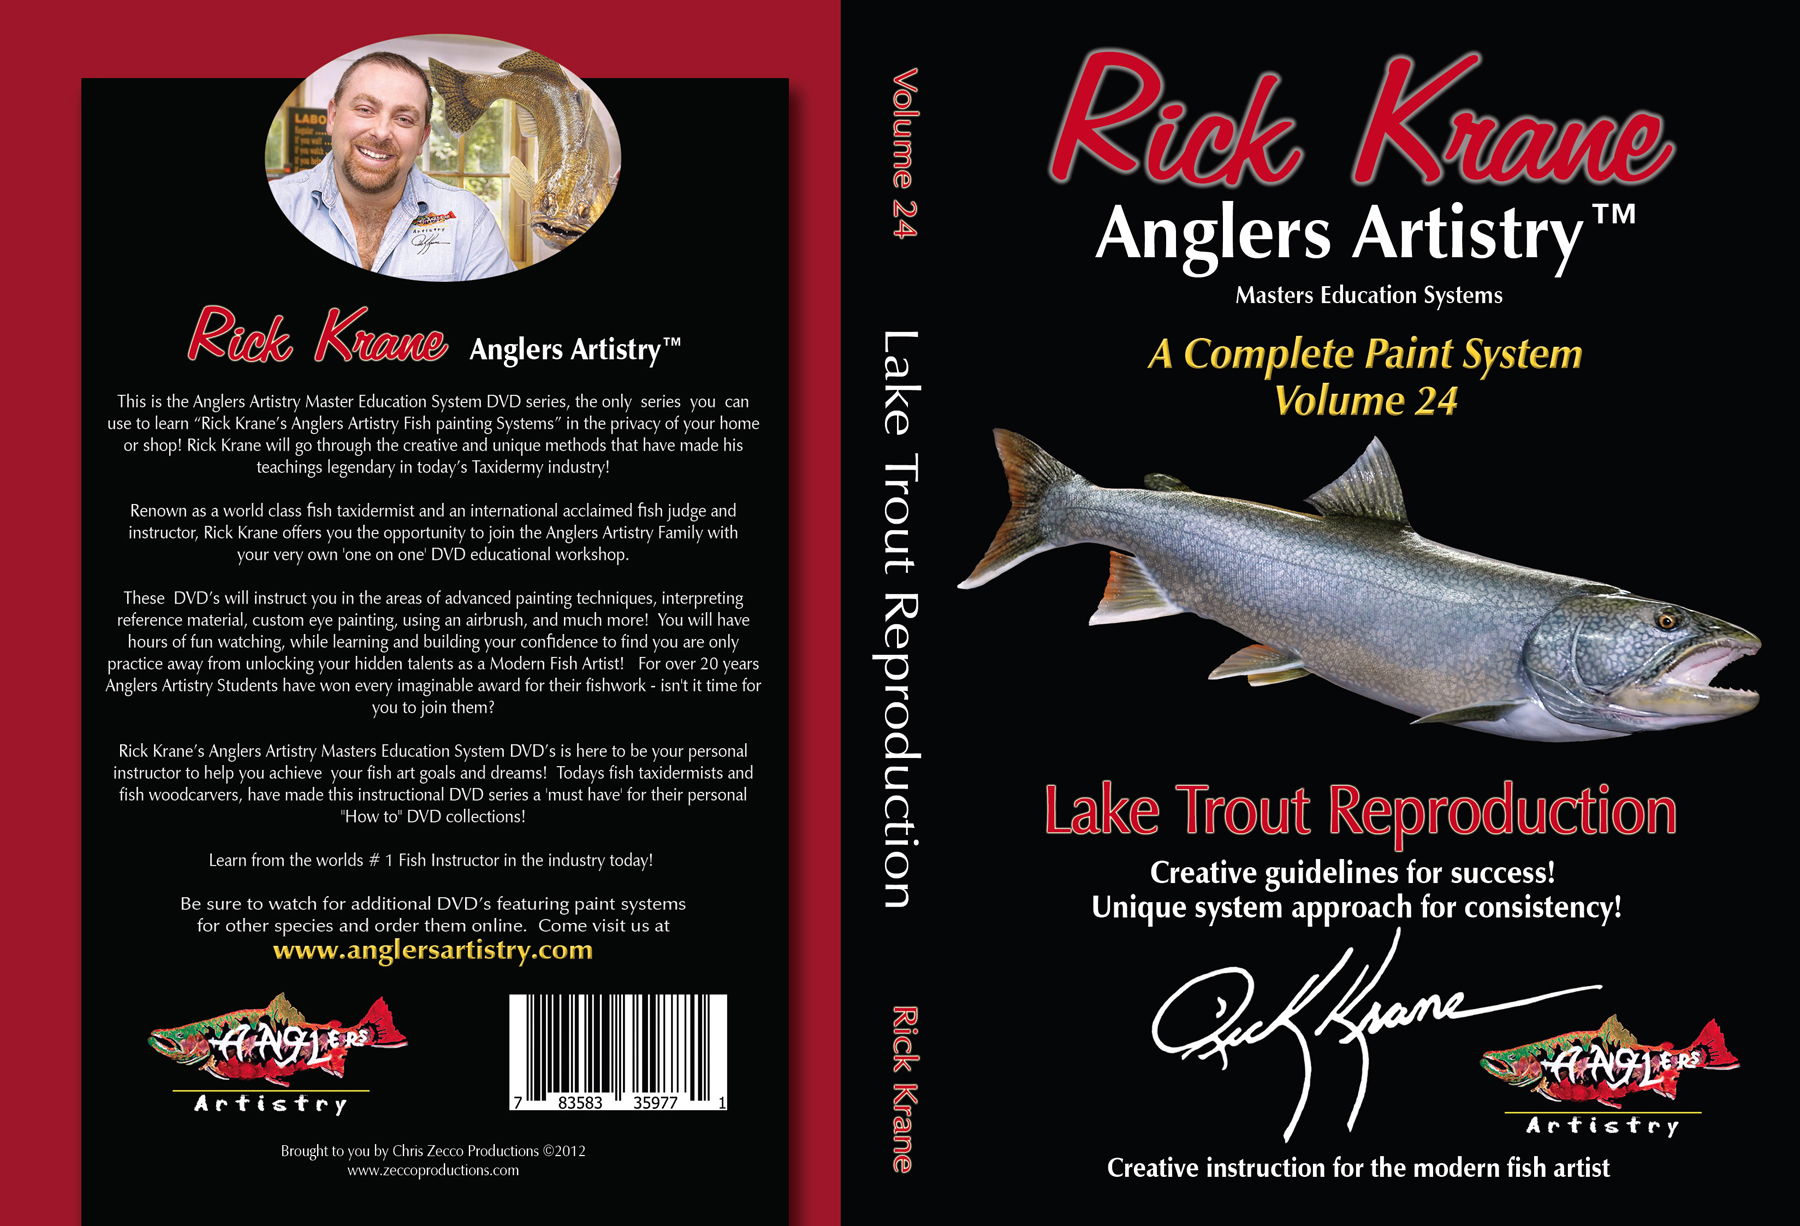 Volume 24 - Lake Trout Reproduction